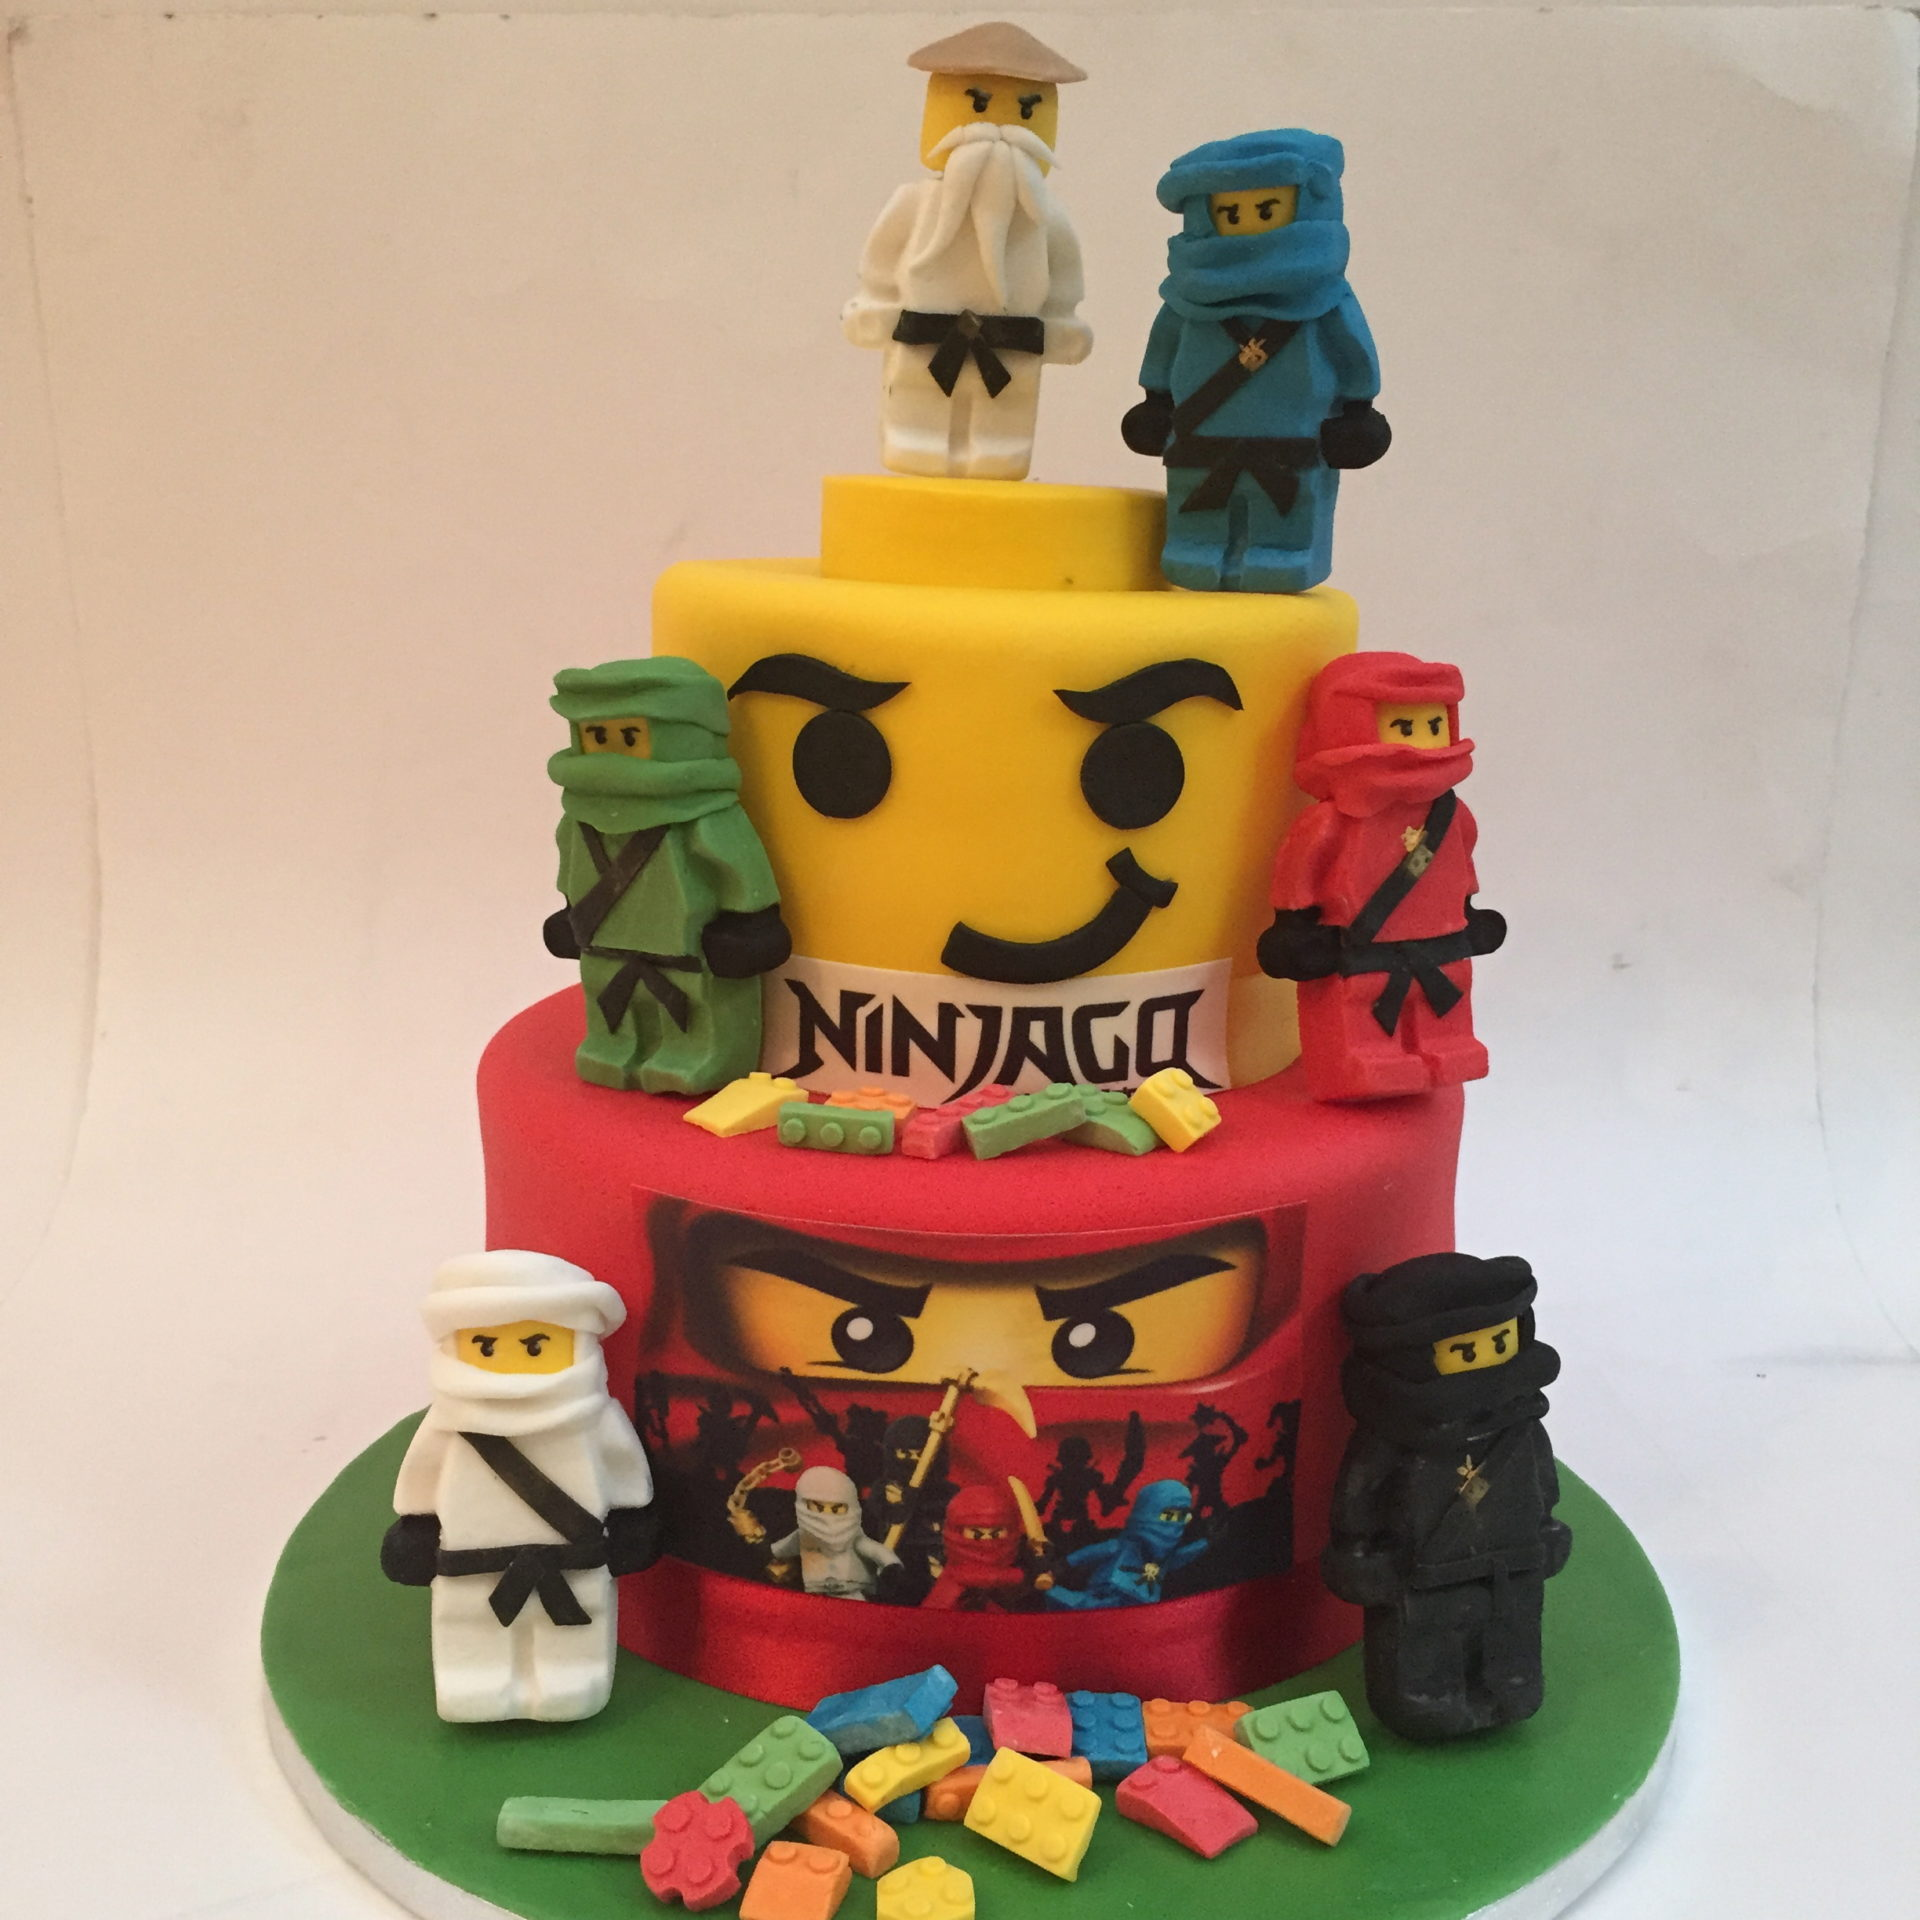 Astounding Ninjago Birthday Cake London Etoile Bakery Funny Birthday Cards Online Inifofree Goldxyz